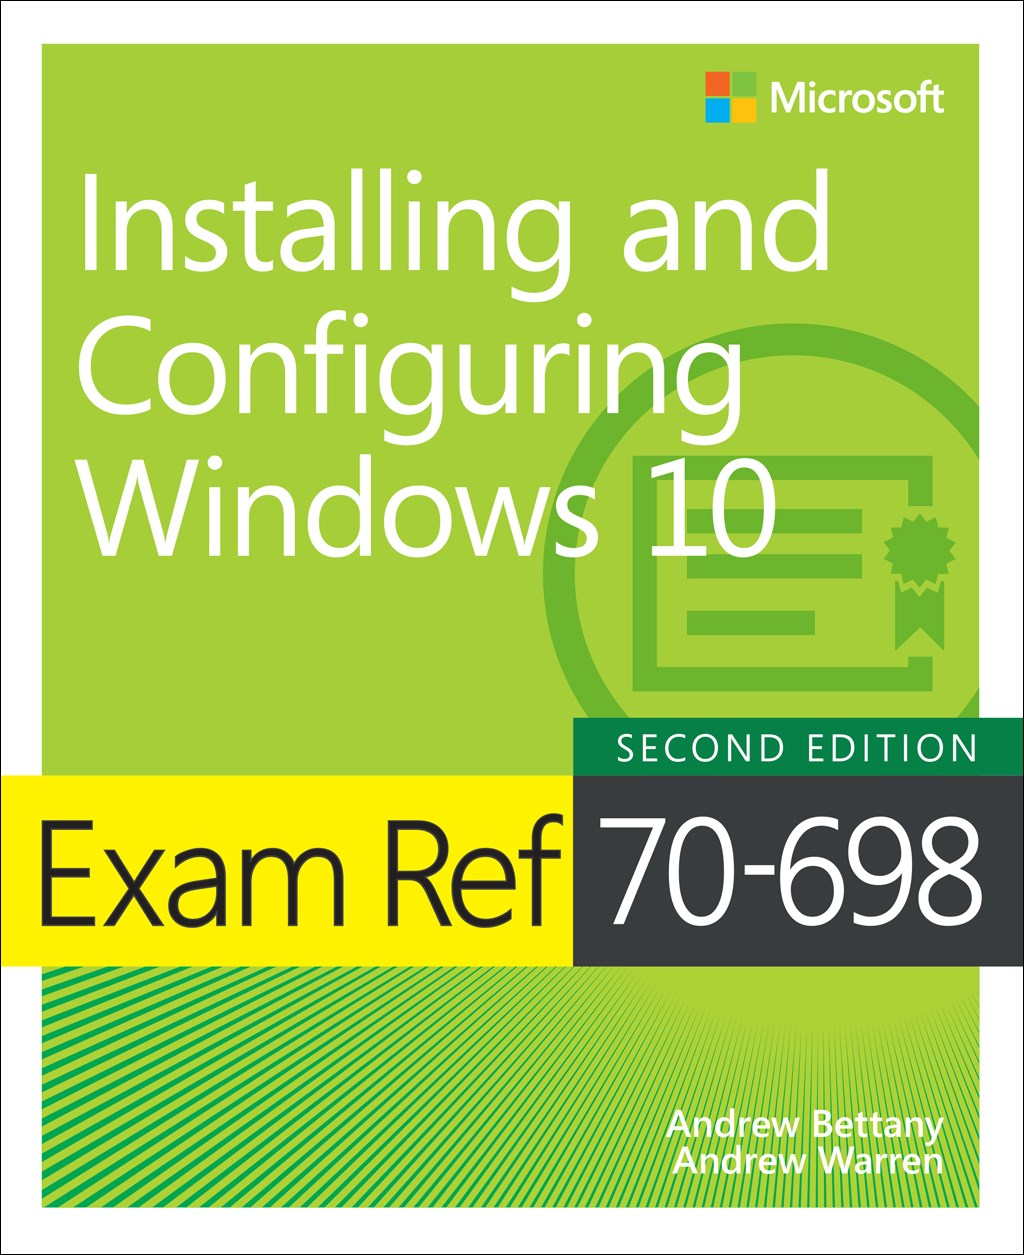 Exam Ref 70-698 Installing and Configuring Windows 10, 2nd Edition.